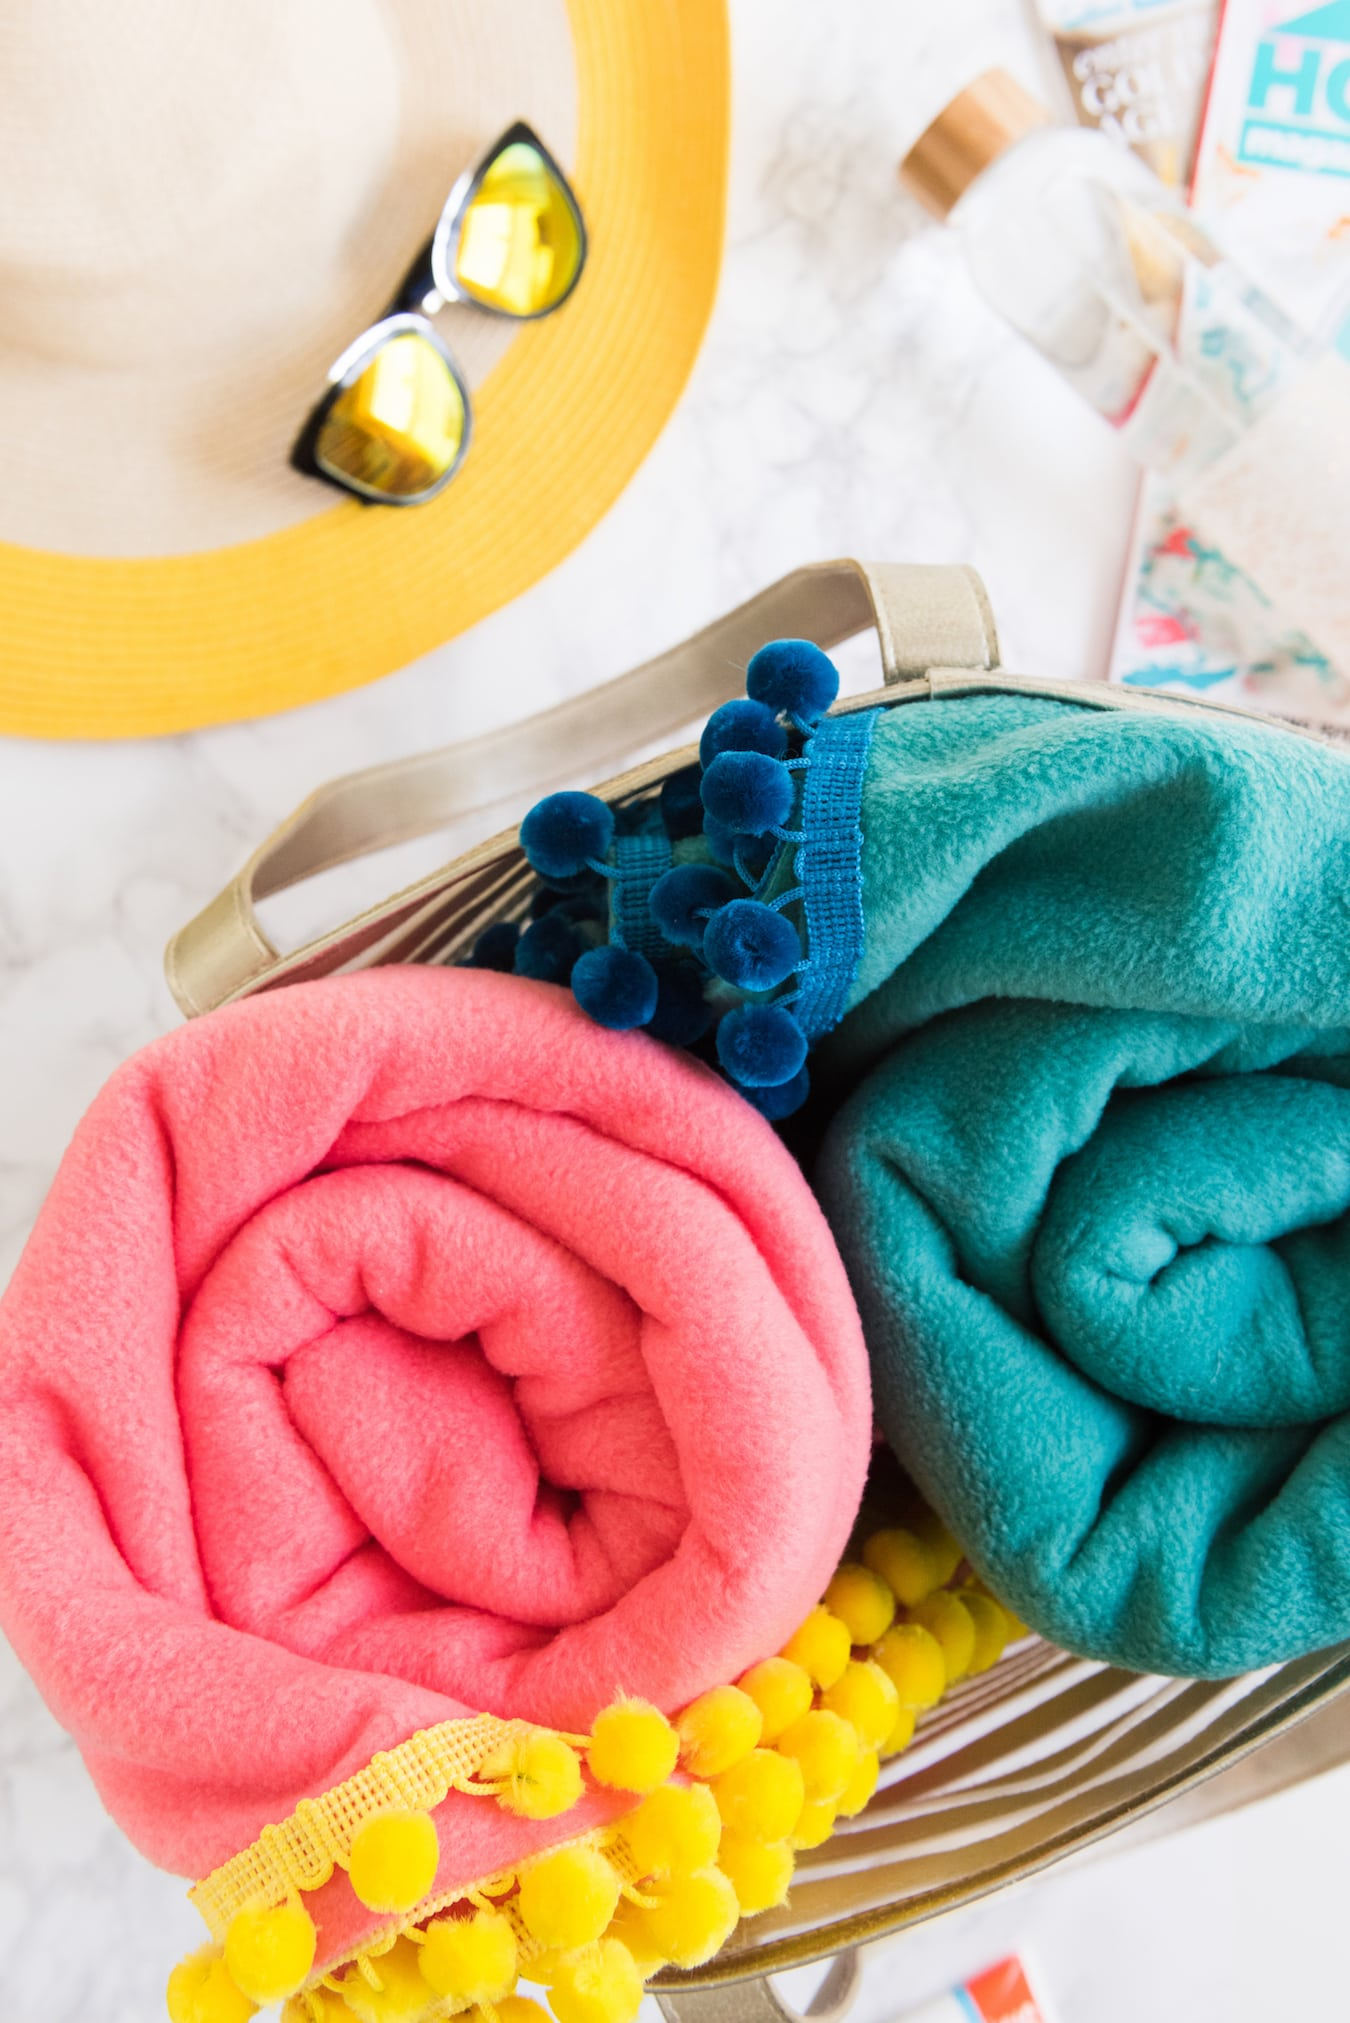 How to make a no-sew blanket! Find the tutorial for these colorful pom pom picnic blankets from @cydconverse! | Click through for more fun summer ideas, entertaining tips, party ideas, recipes, crafts and more!